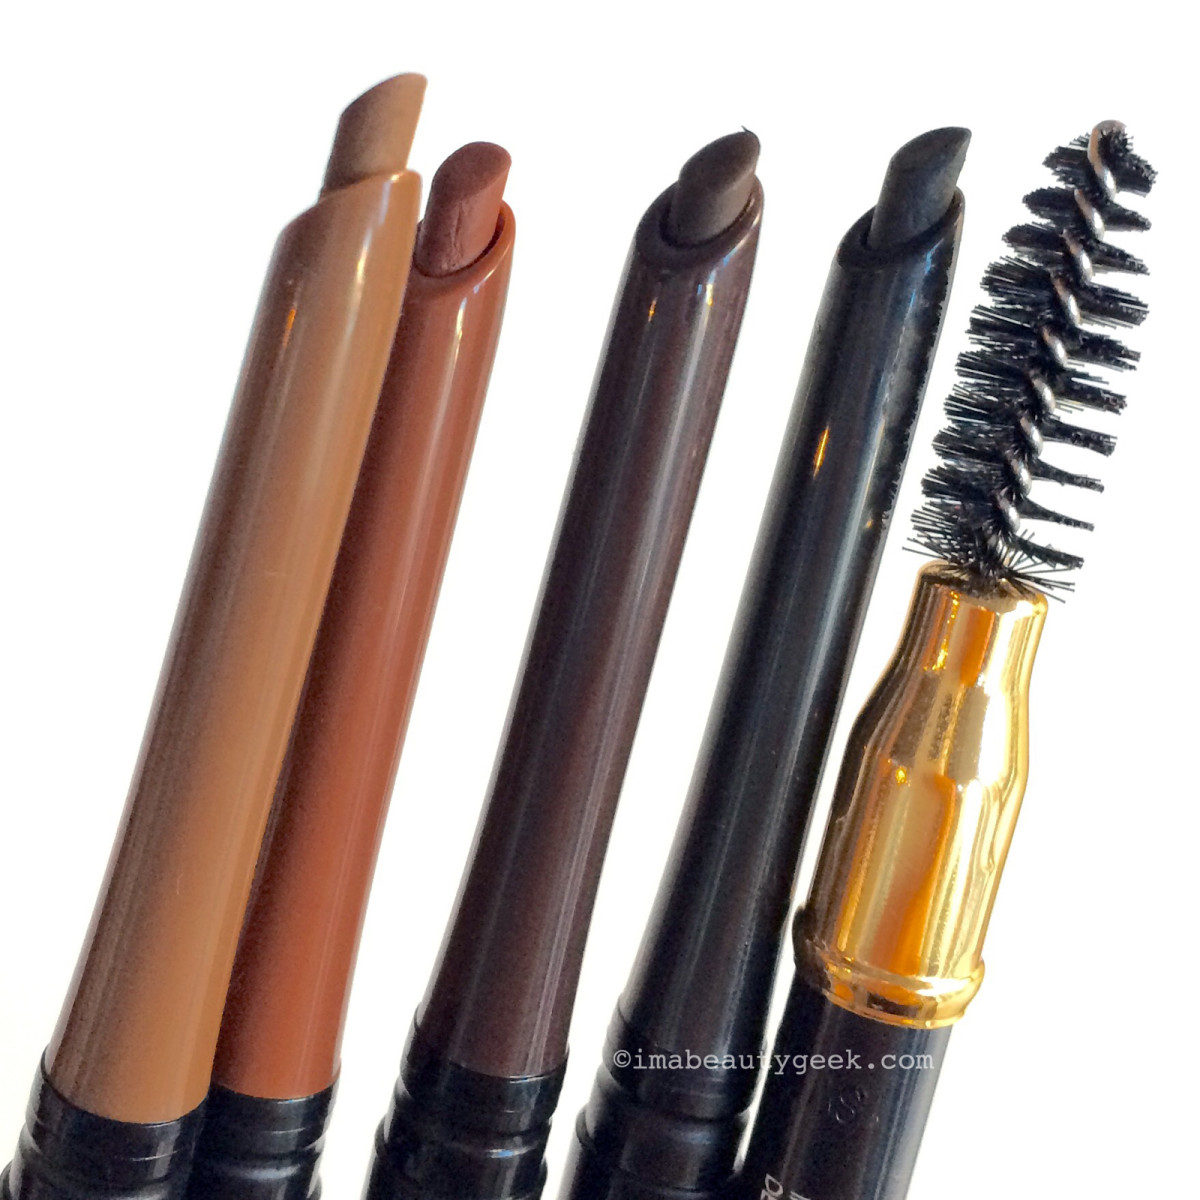 Revlon ColorStay Brow Pencils in Soft Brown, Auburn, Dark Brown, and Soft Black